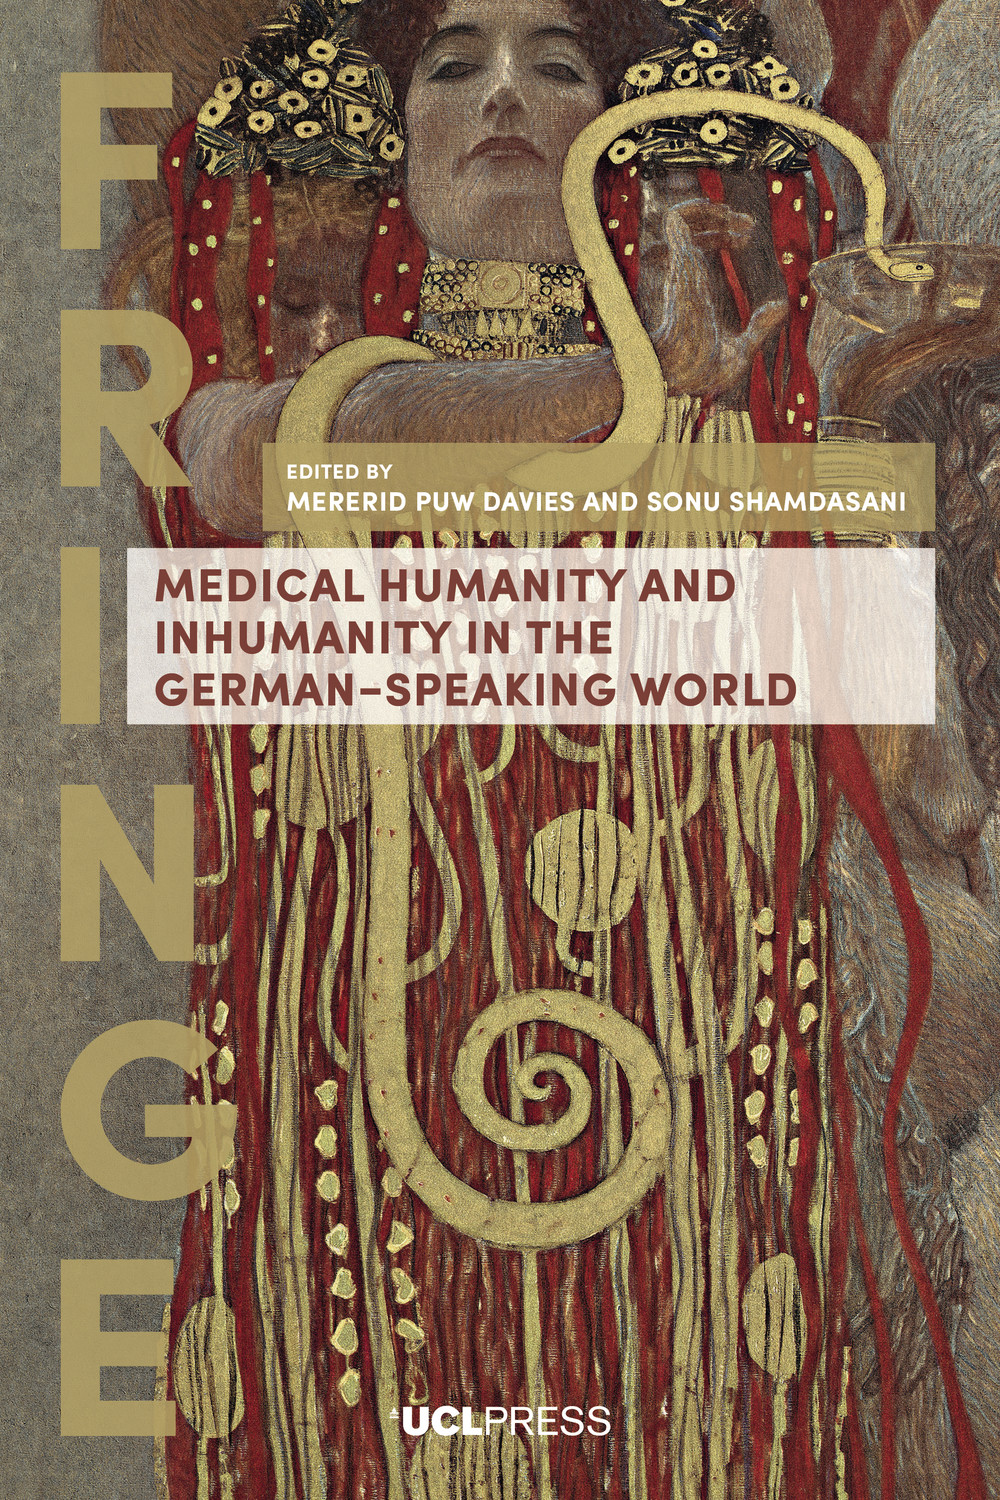 Medical Humanity and Inhumanity in the German-Speaking World